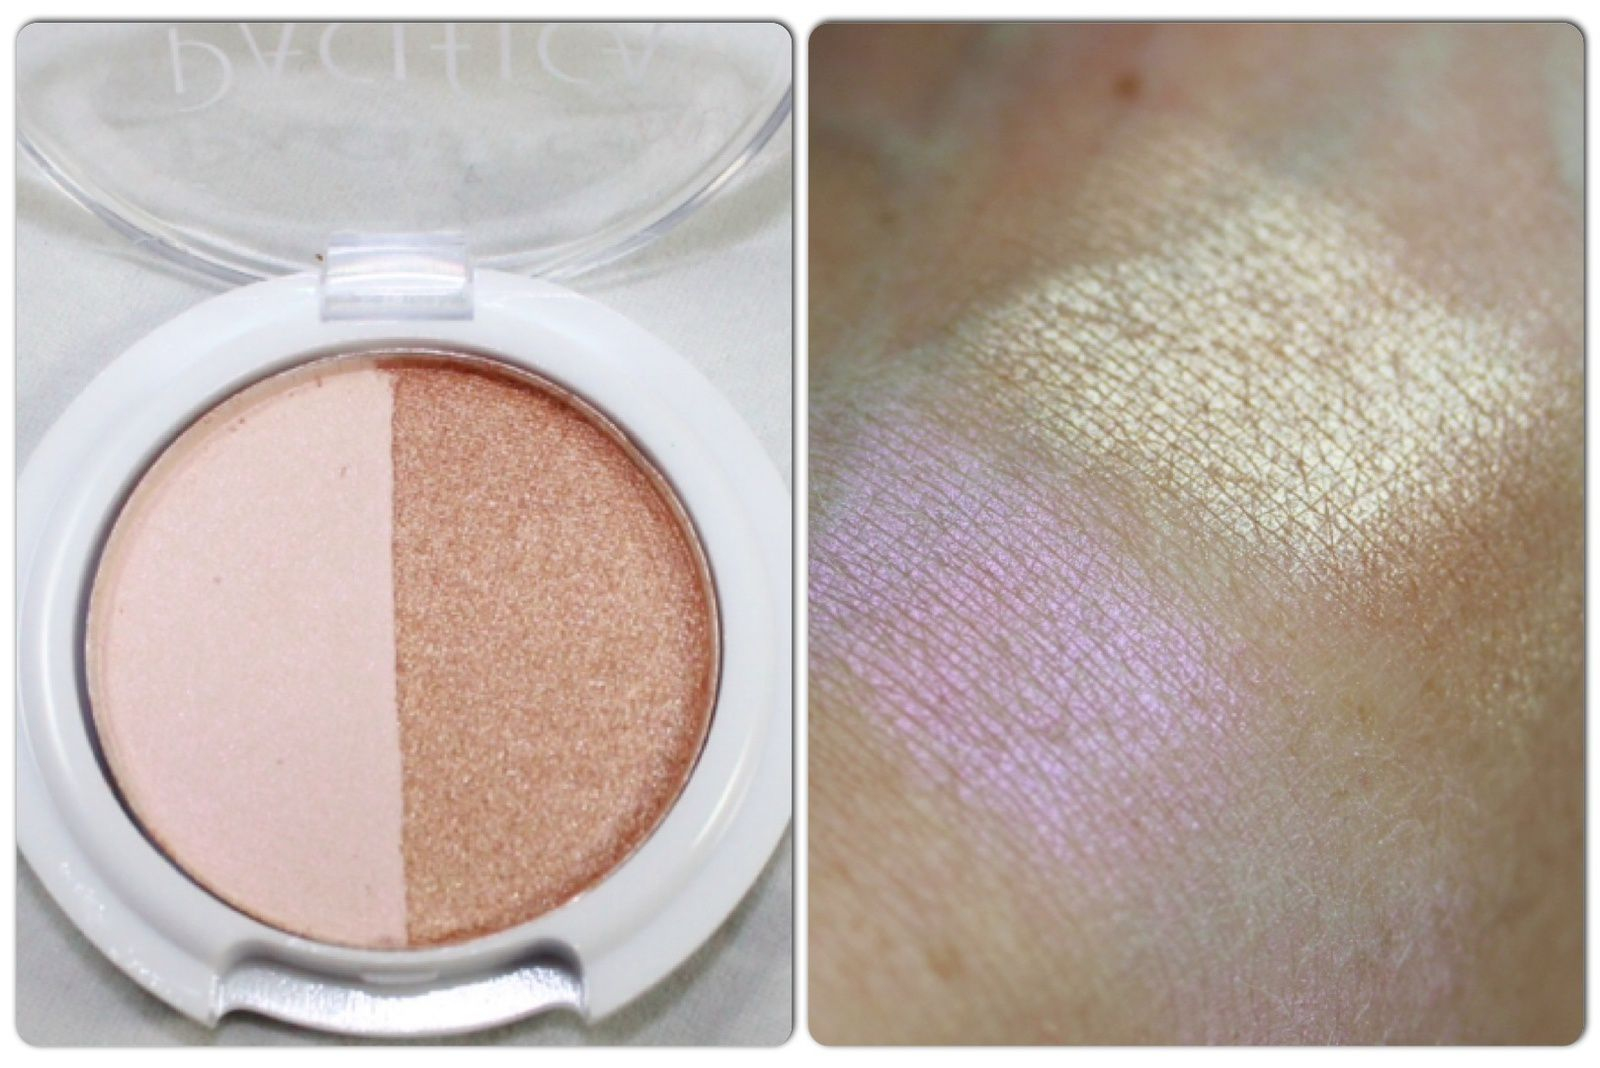 Pacifica Mineral Eyeshadow Duo #1 (Celestial & Opal)